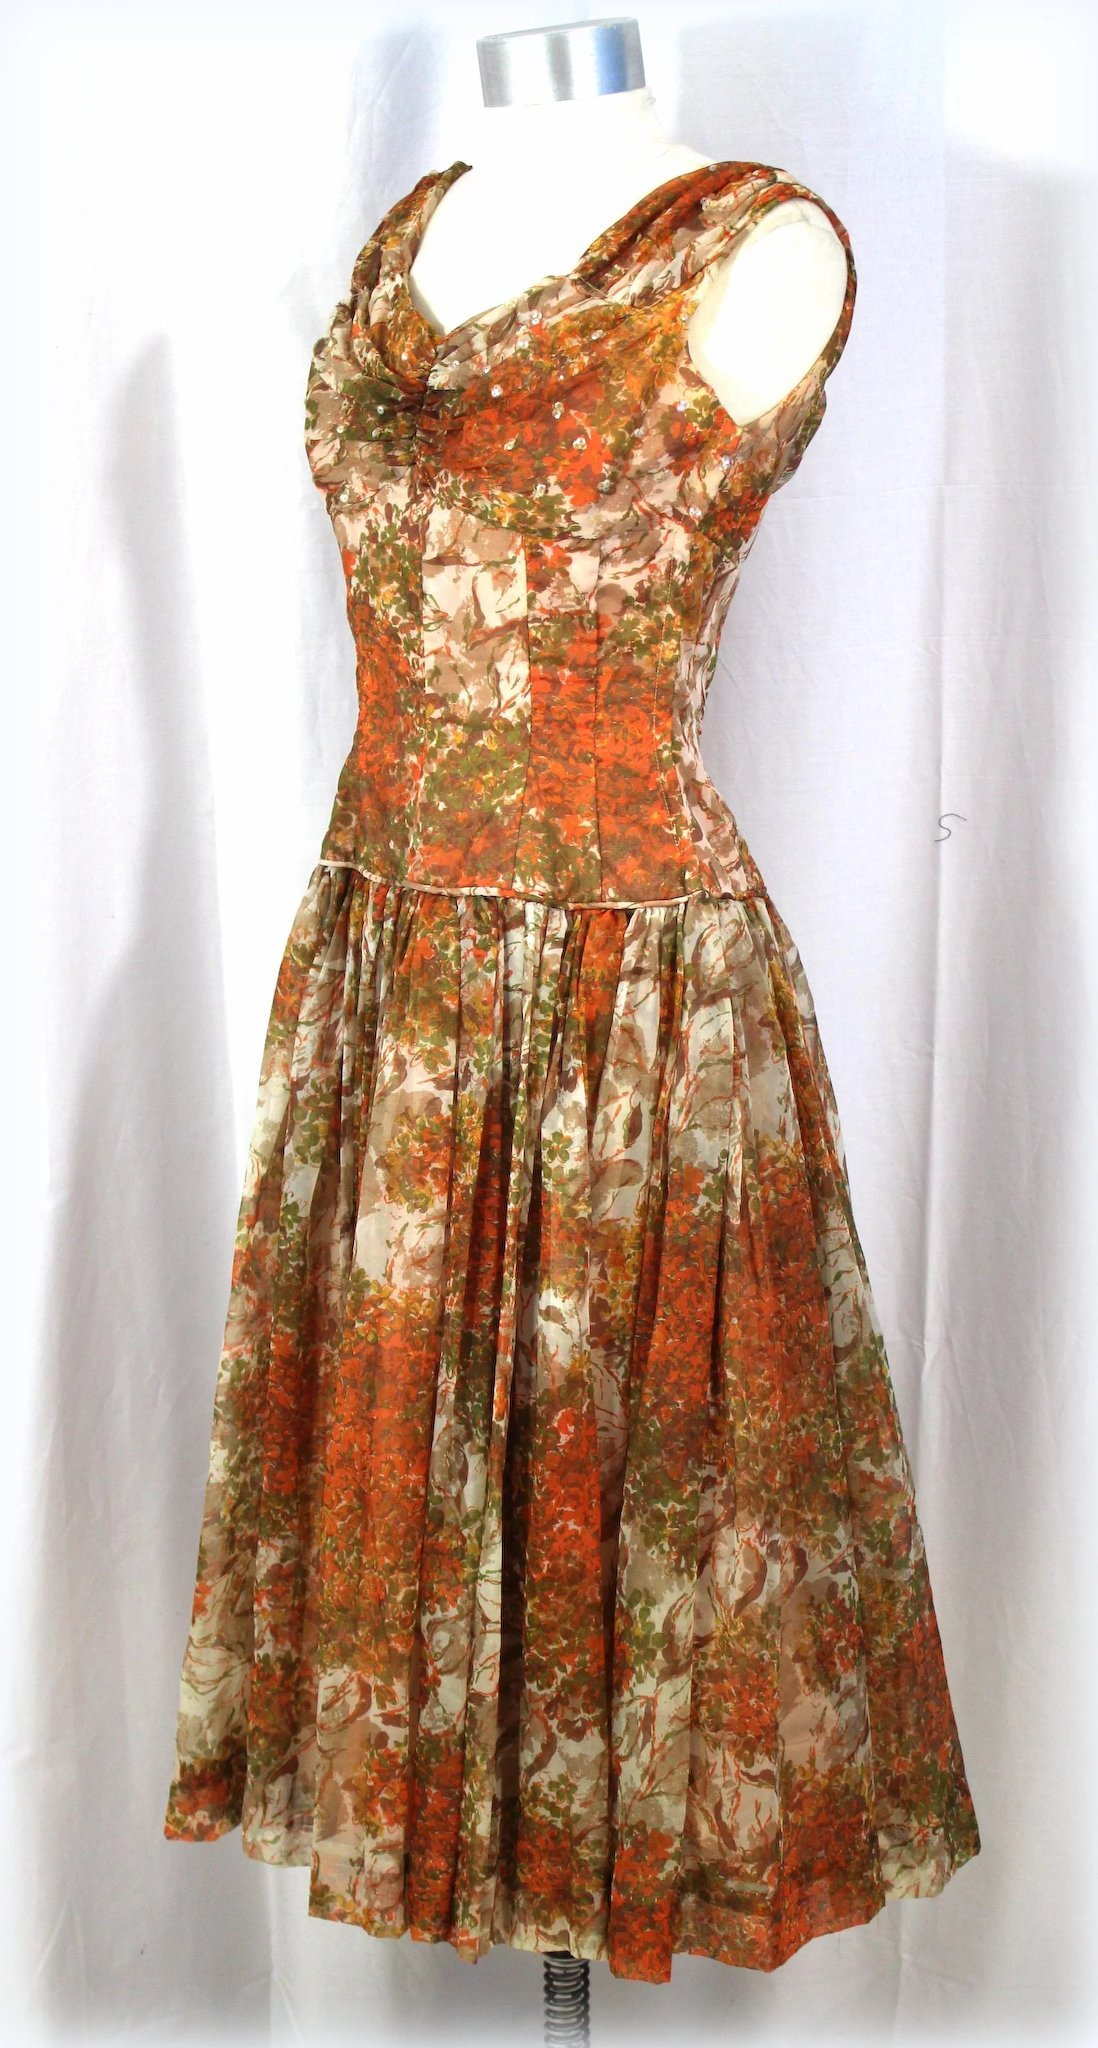 Vintage 1950s Floral Chiffon Garden Party Dress W Floating